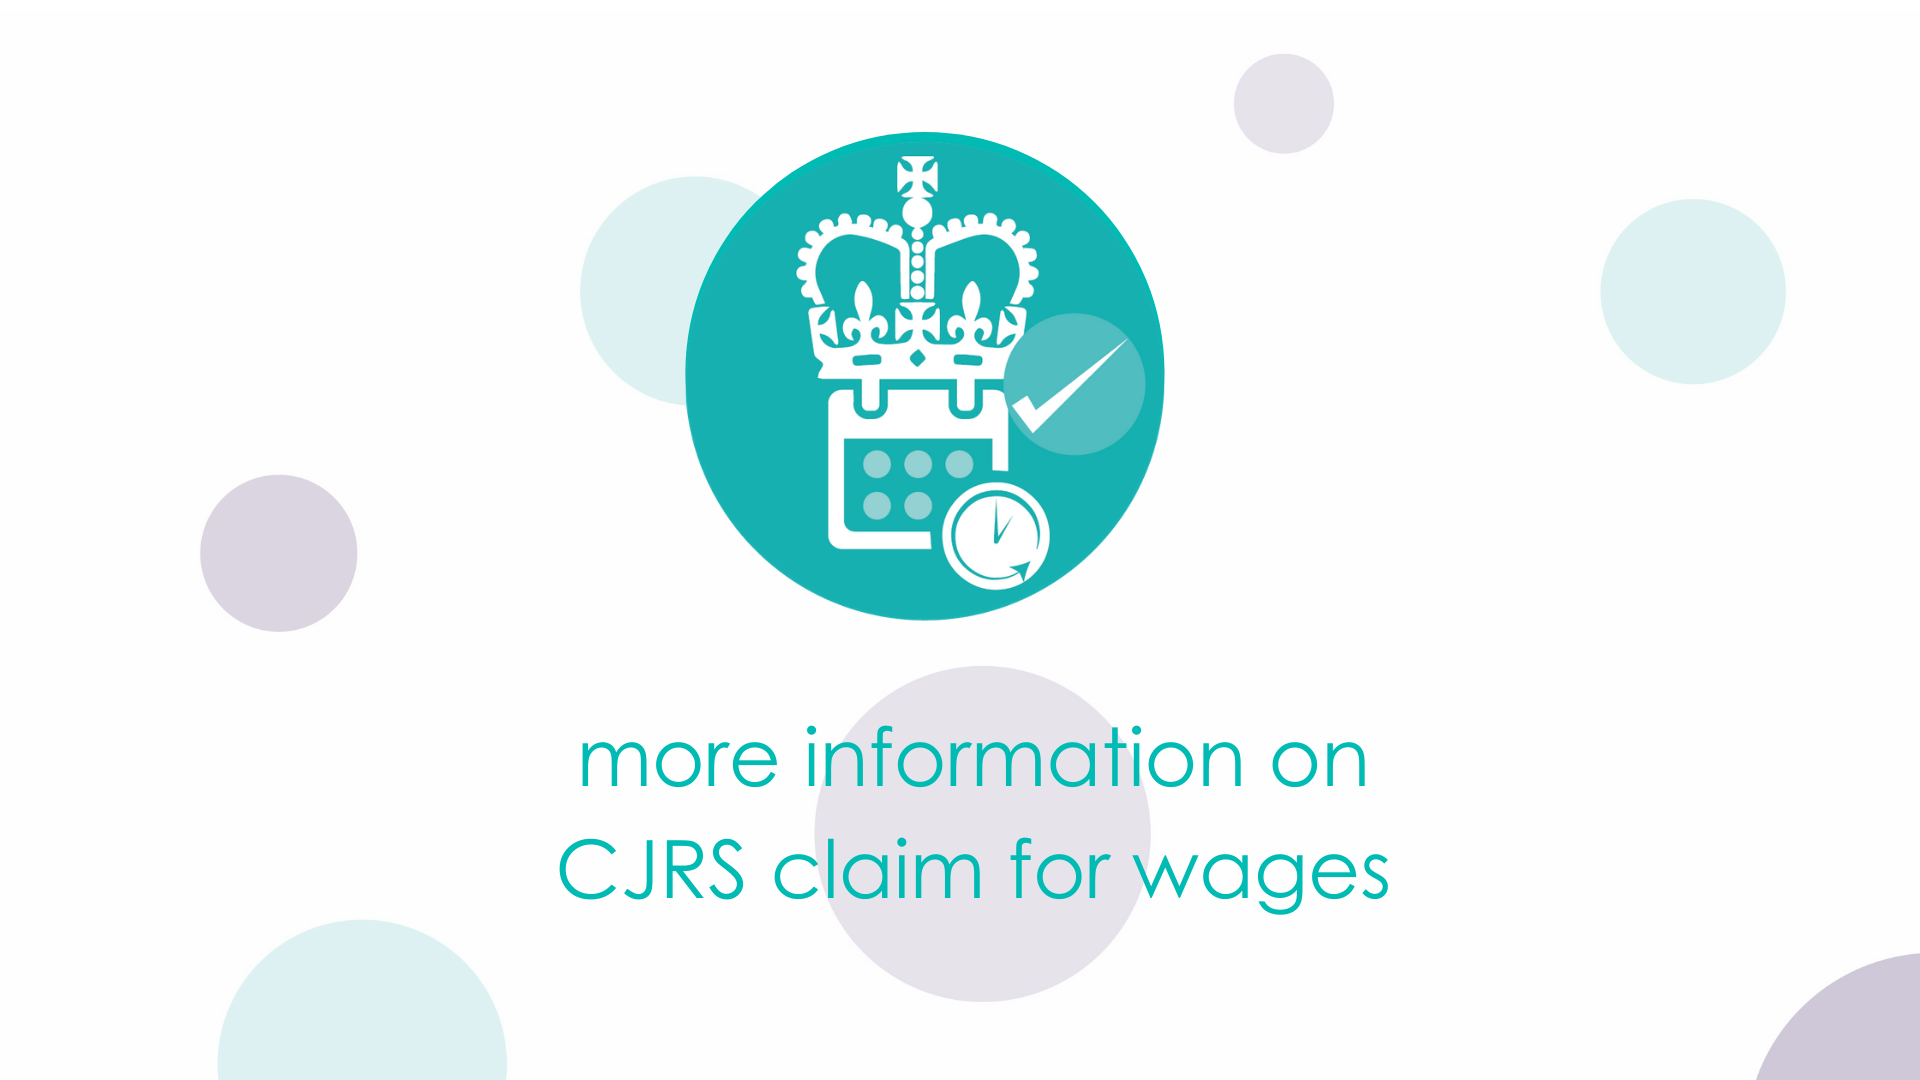 more information on CJRS claim for wages